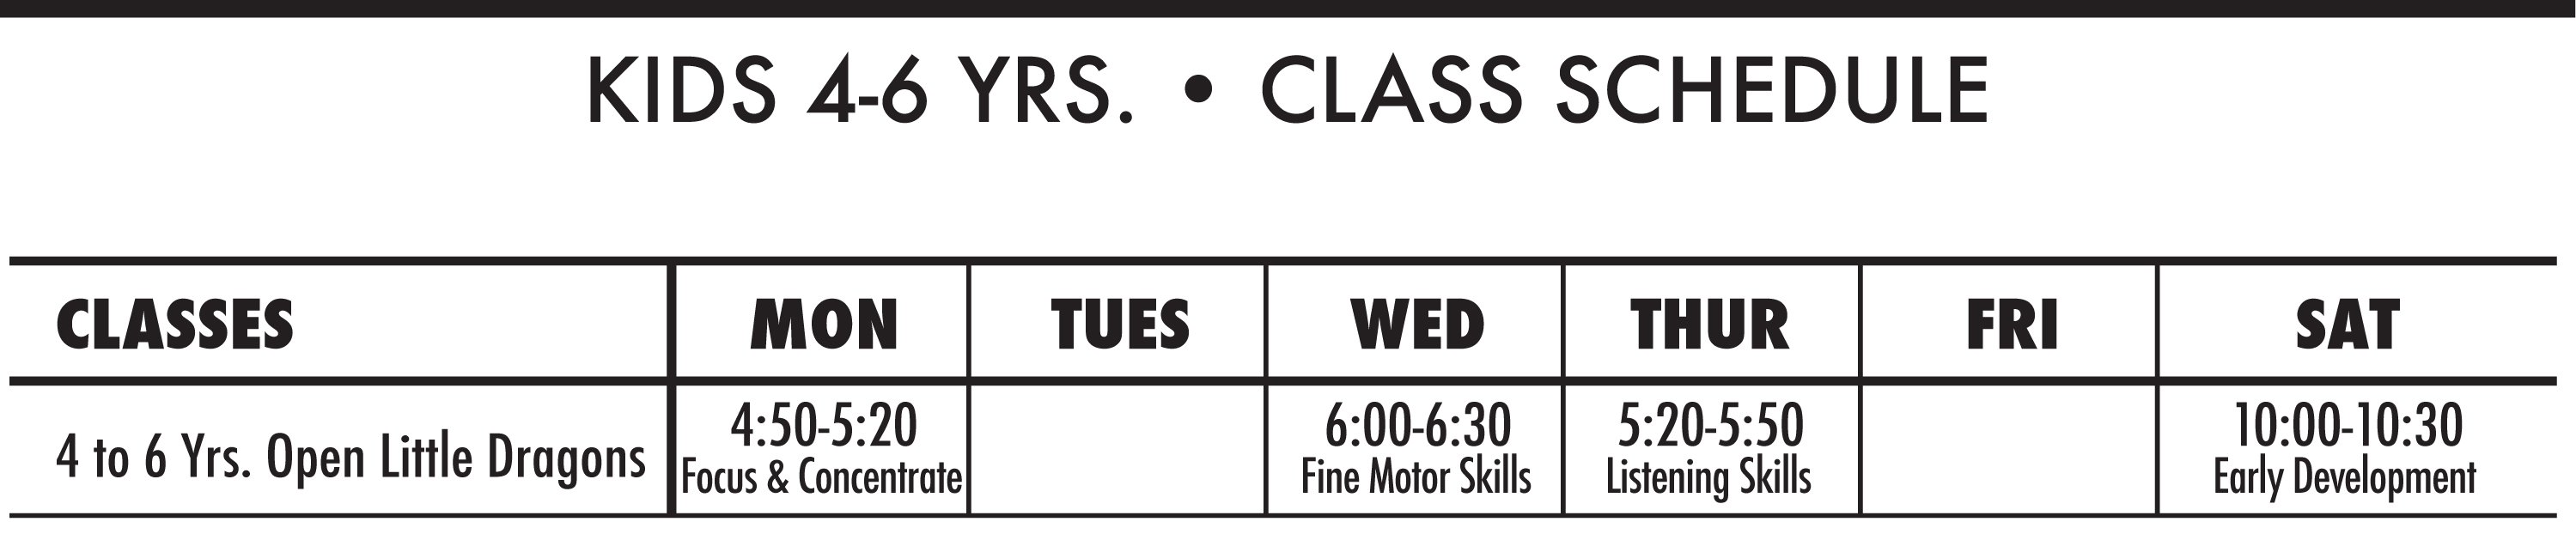 Kids' Schedule at Don Warrener's Martial Arts Academy